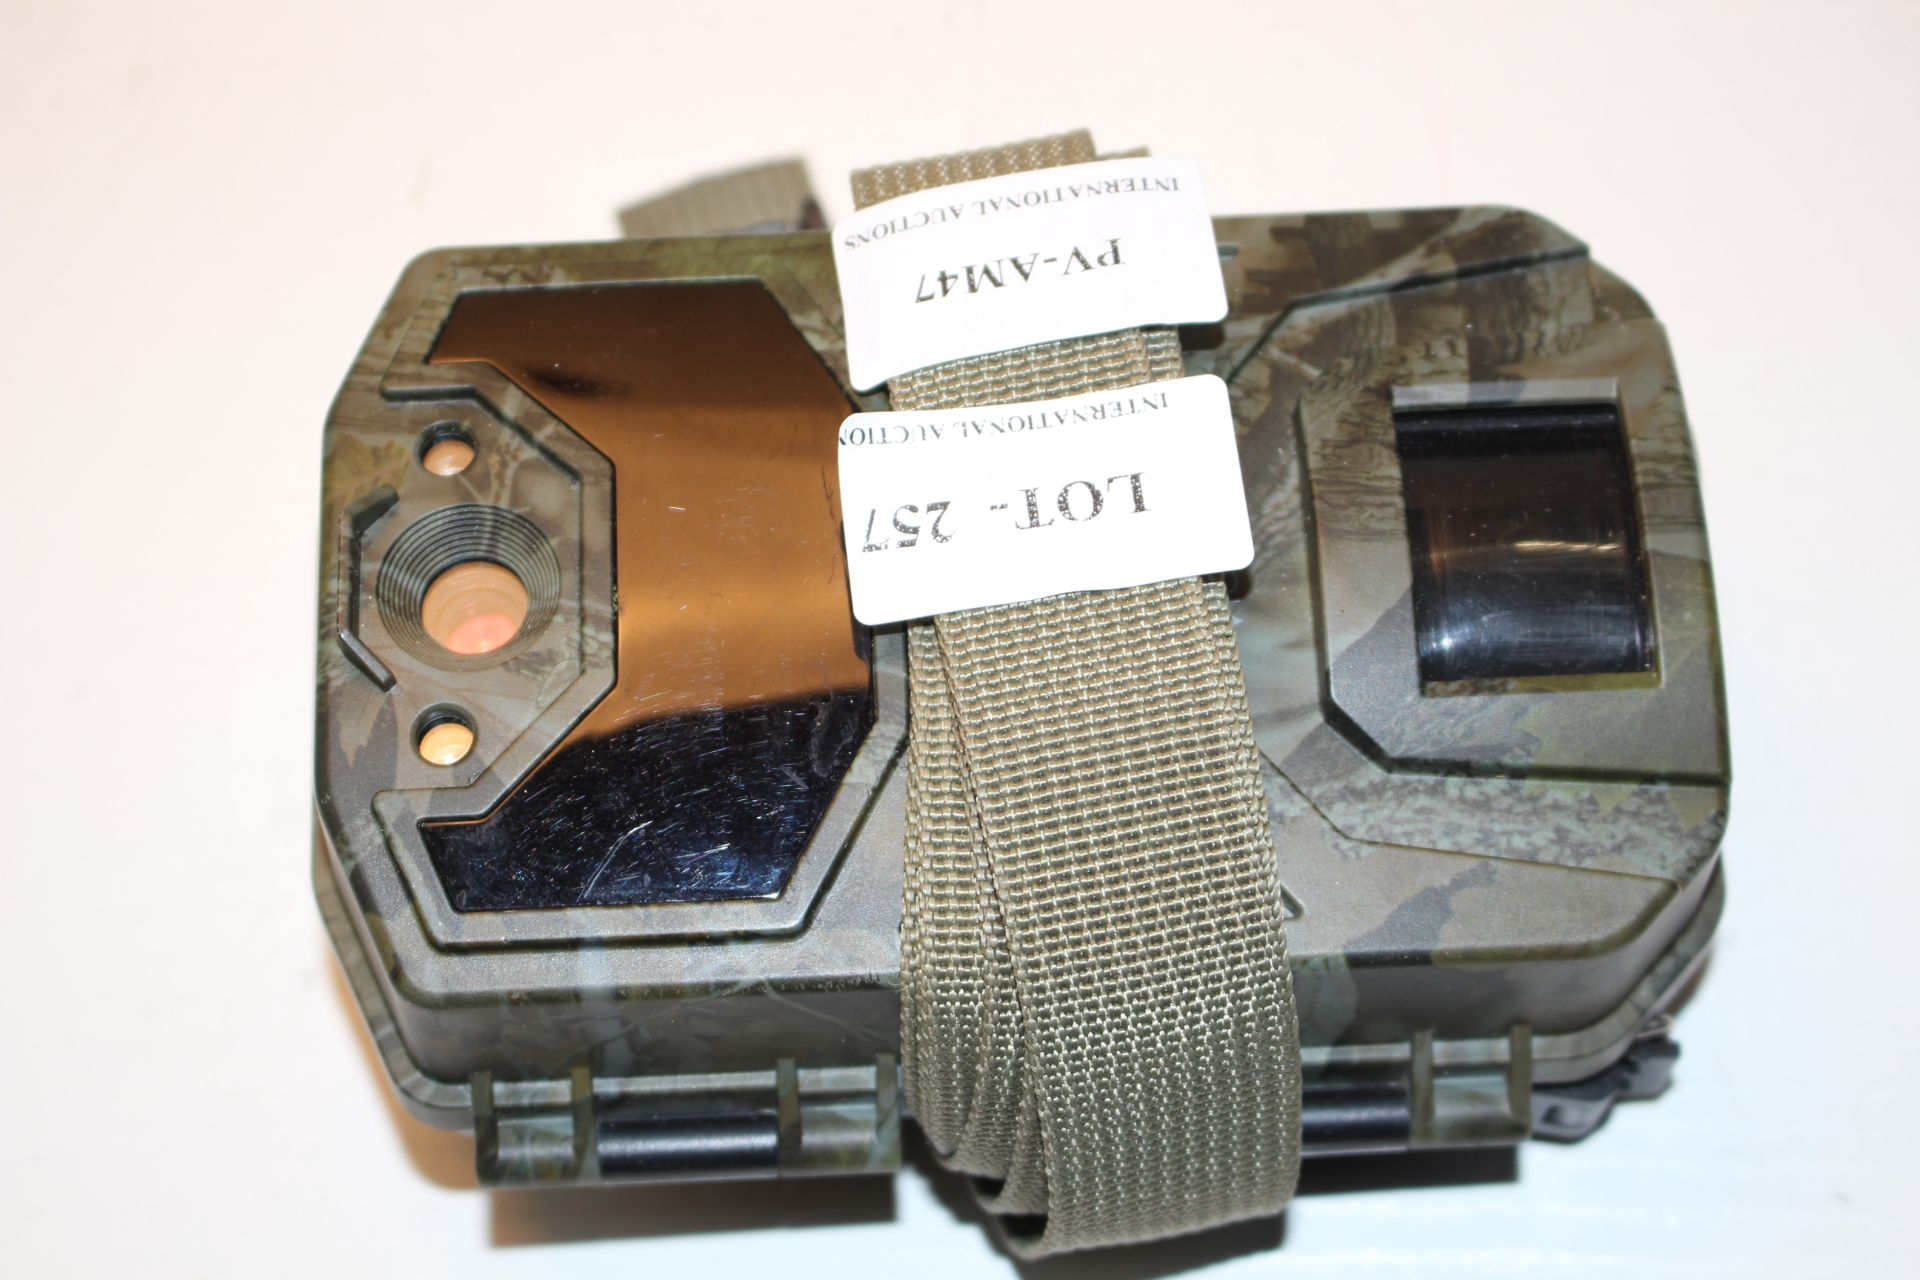 UNBOXED TRAIL CAMERA RRP £49.99Condition ReportAppraisal Available on Request- All Items are